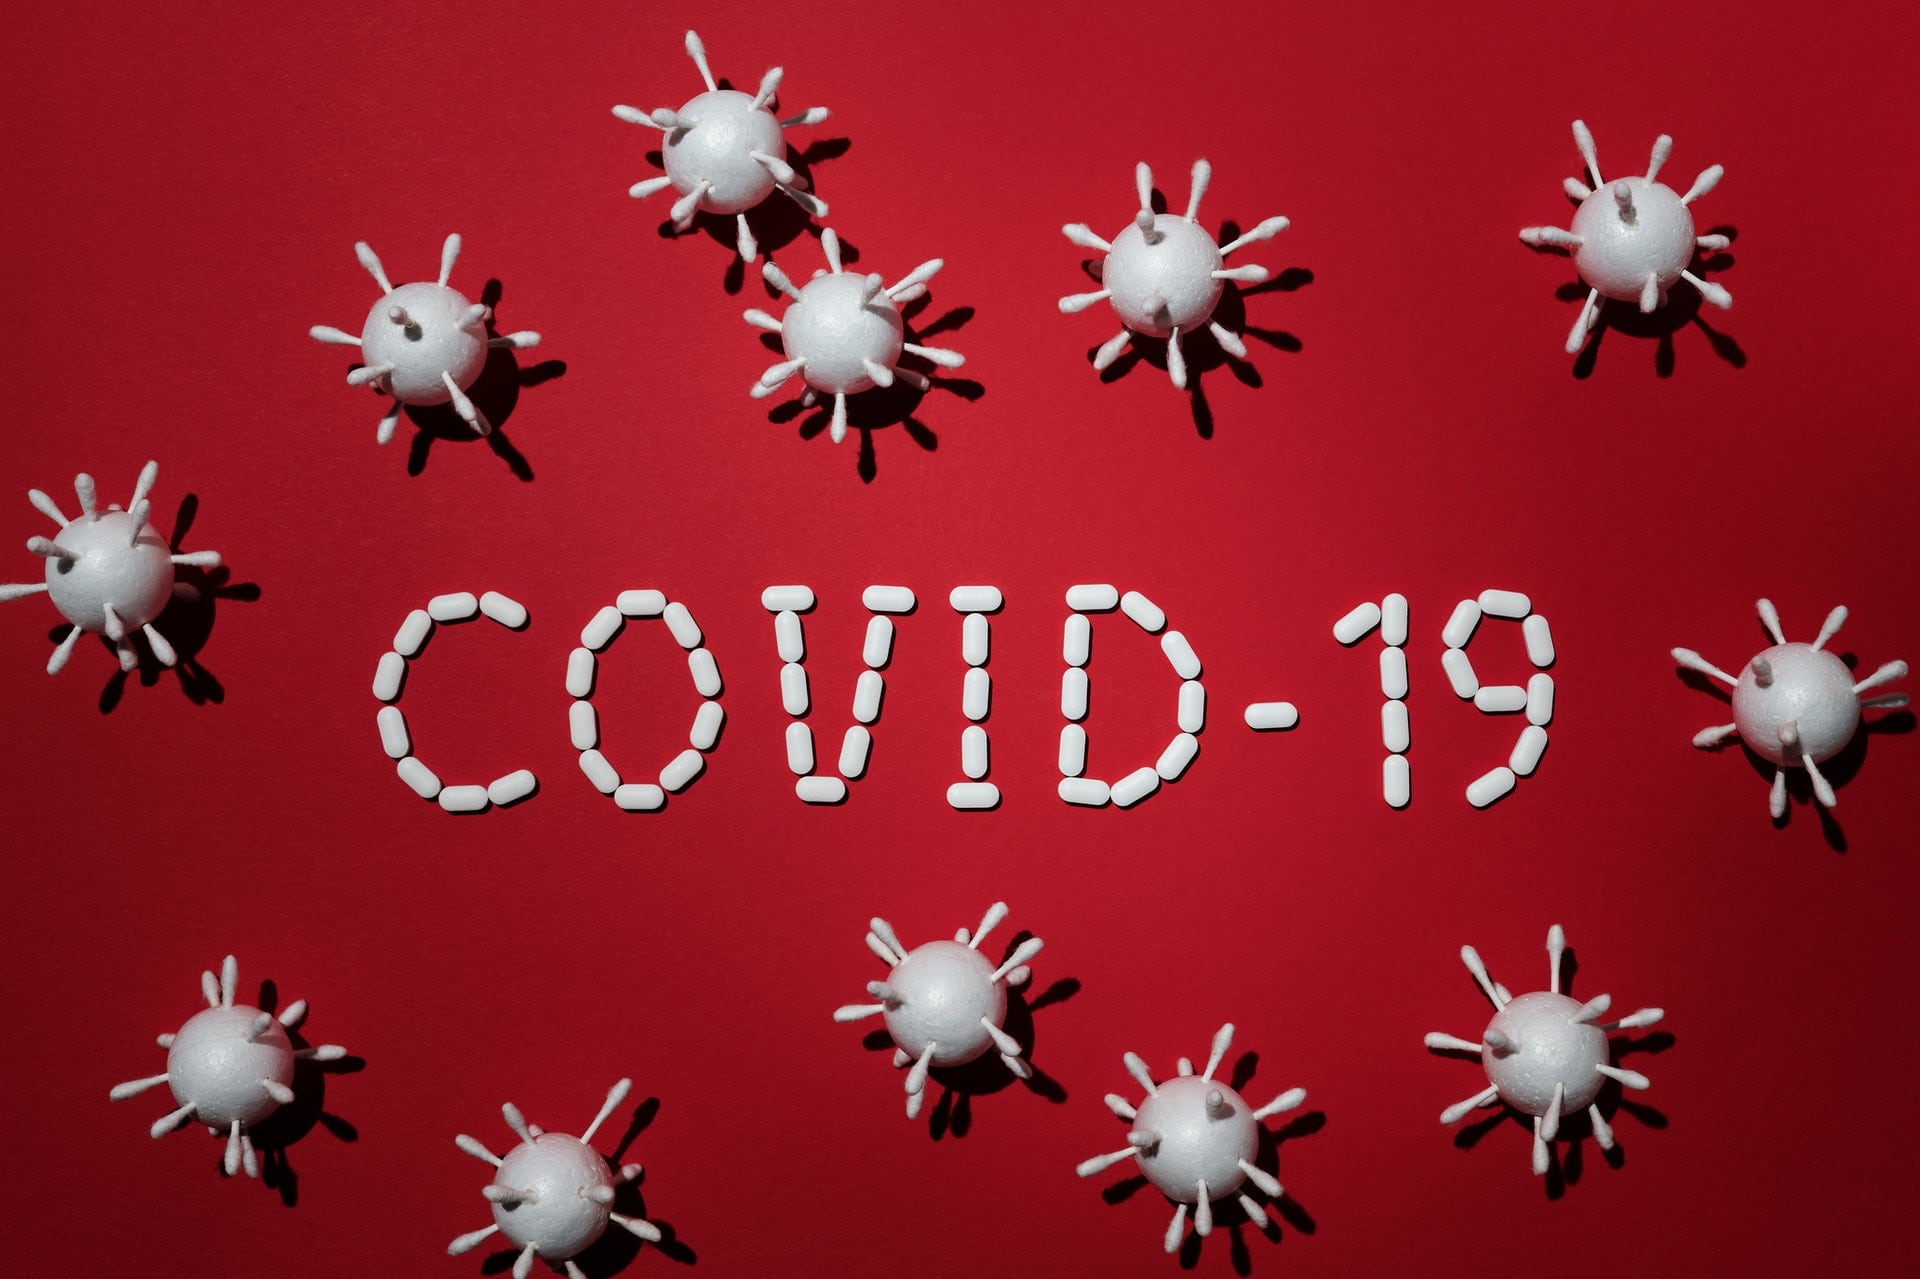 Coronavirus Covid-19 Pandemic Economic Recovery Plan, Start A 34 Ton Side Tipper Trucking Business